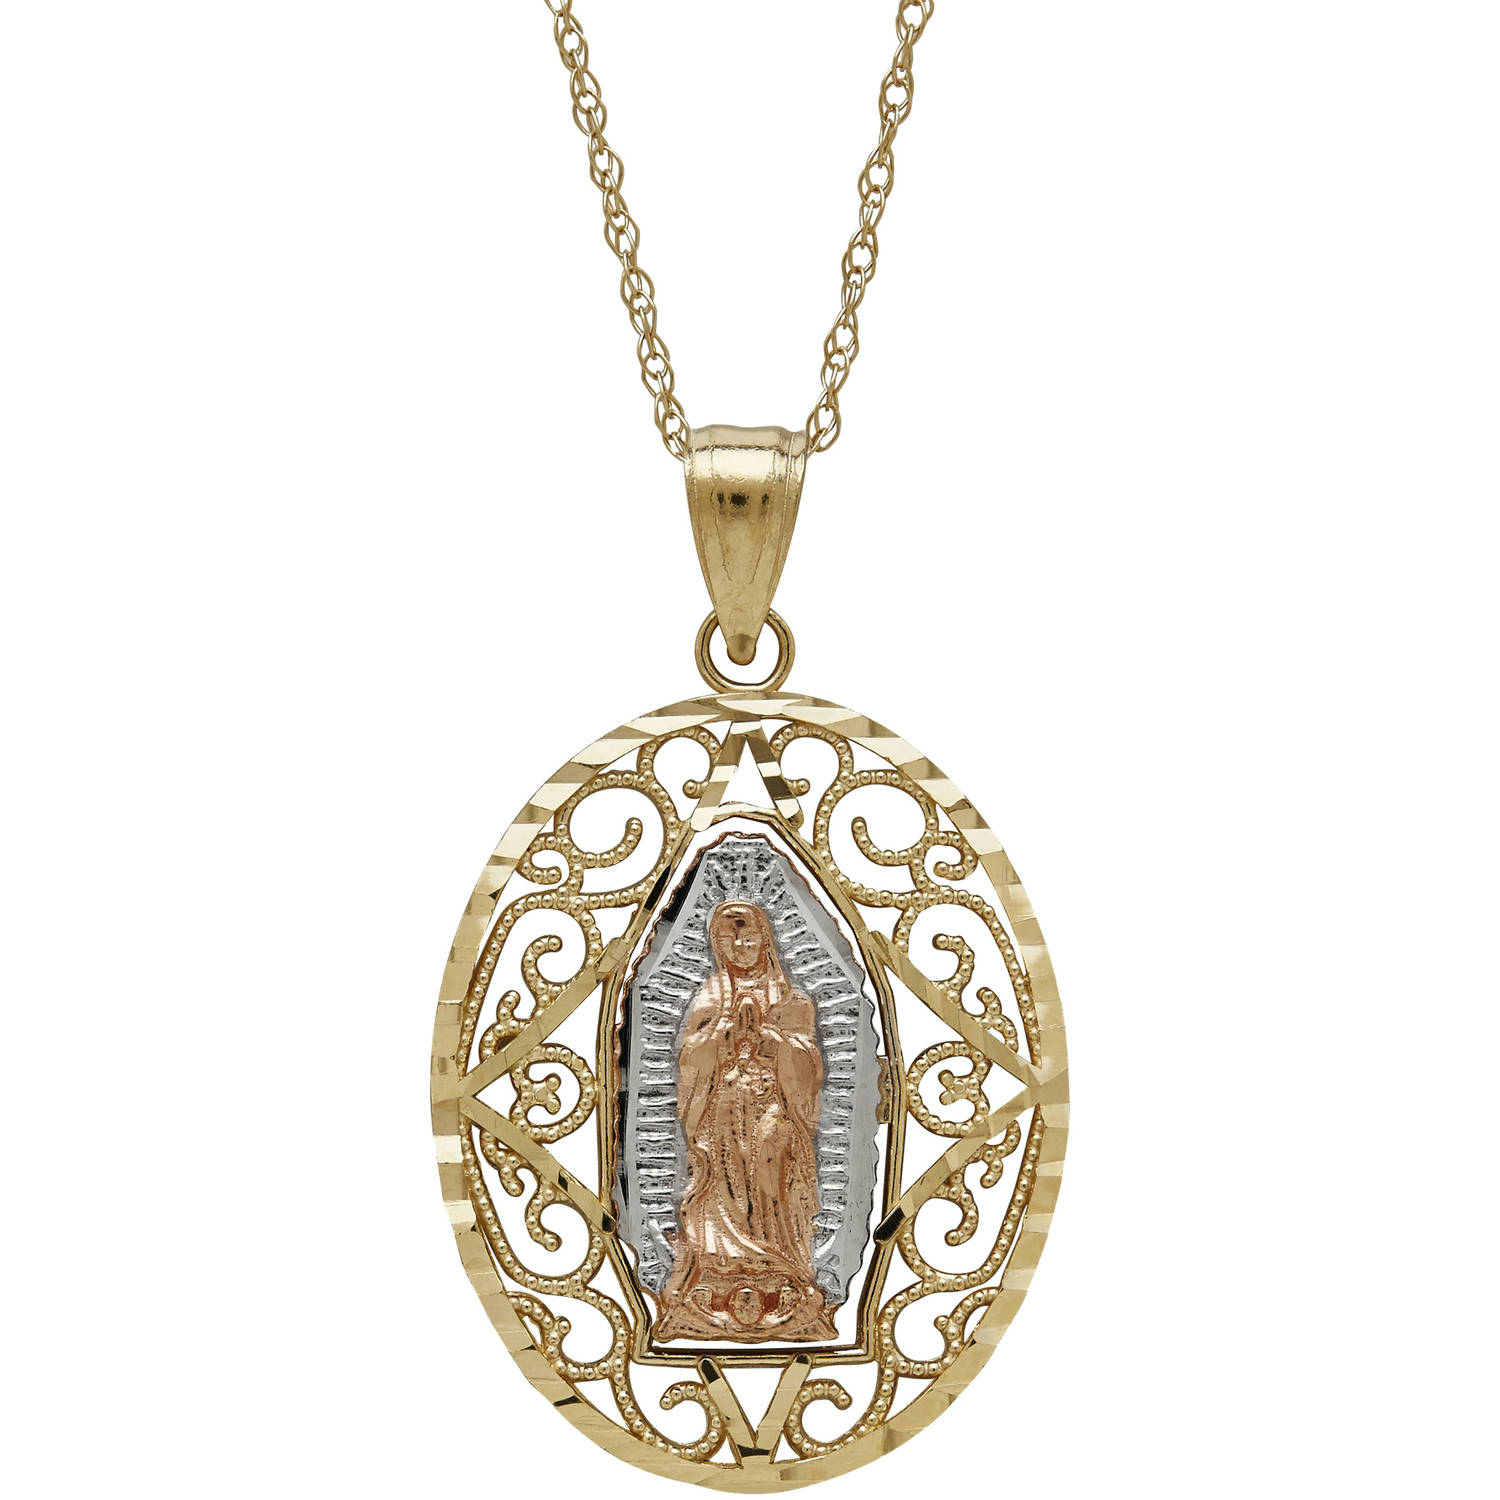 "Simply Gold Precious Sentiments 10kt Yellow, White and Pink Oval Guadalupe Pendant, 18"" by Richline Group Inc"